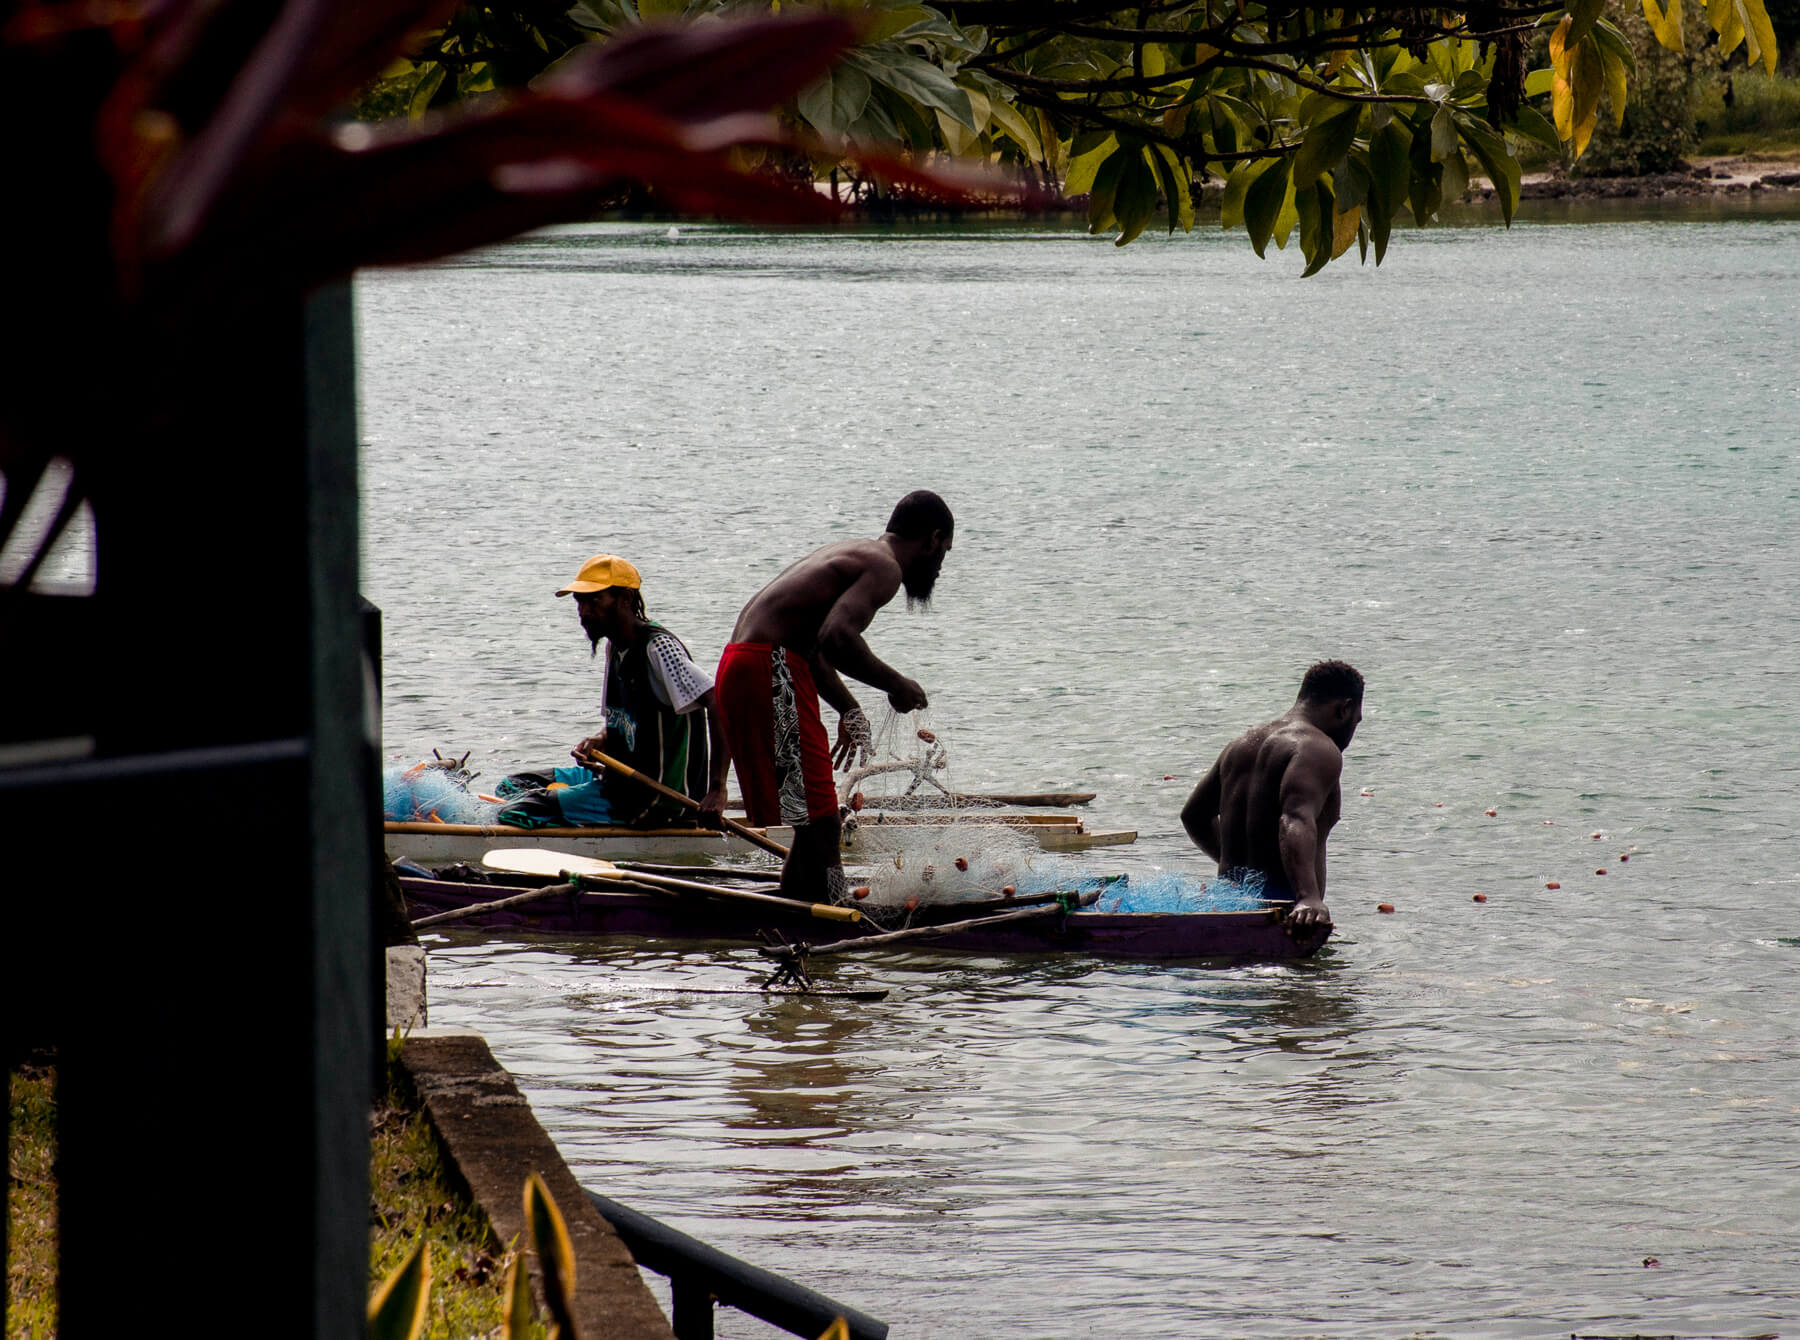 3 men from a local Vanuatu village in a traditional canoe, catching fish with a net